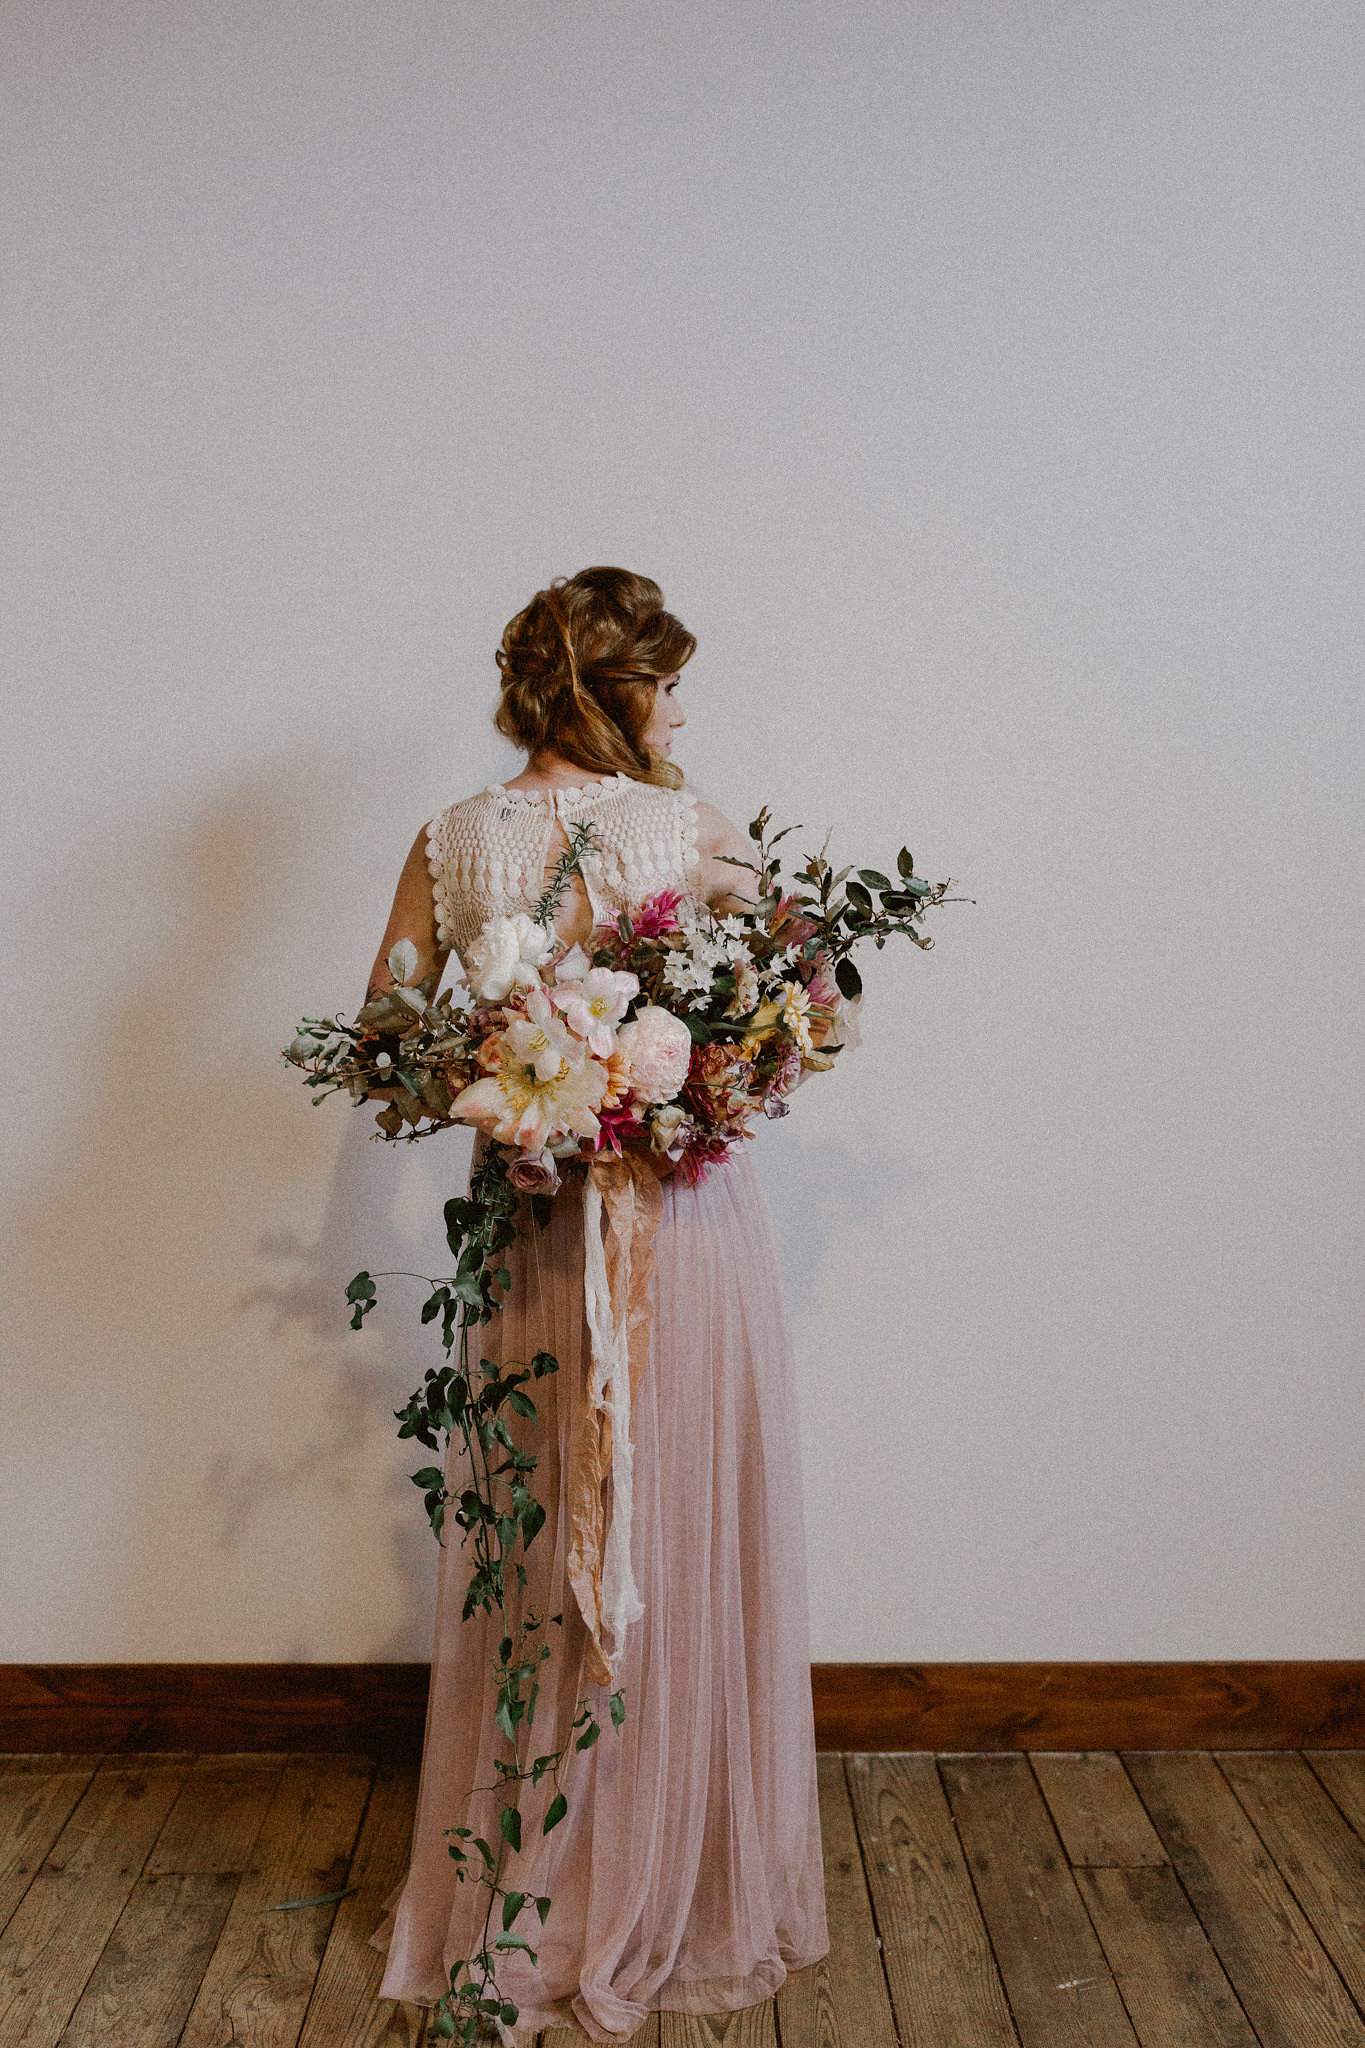 Romantic Free Bridal half up half down hairstyle + makeup | College Station hair + makeup artist Naturally Flawless | Bryan, Texas | Pink + Purple + Vintage + Romantic + Blush + crochet + two piece wedding dress + old world + bridal bouquet | Wedding Coordinator Epoch Co+